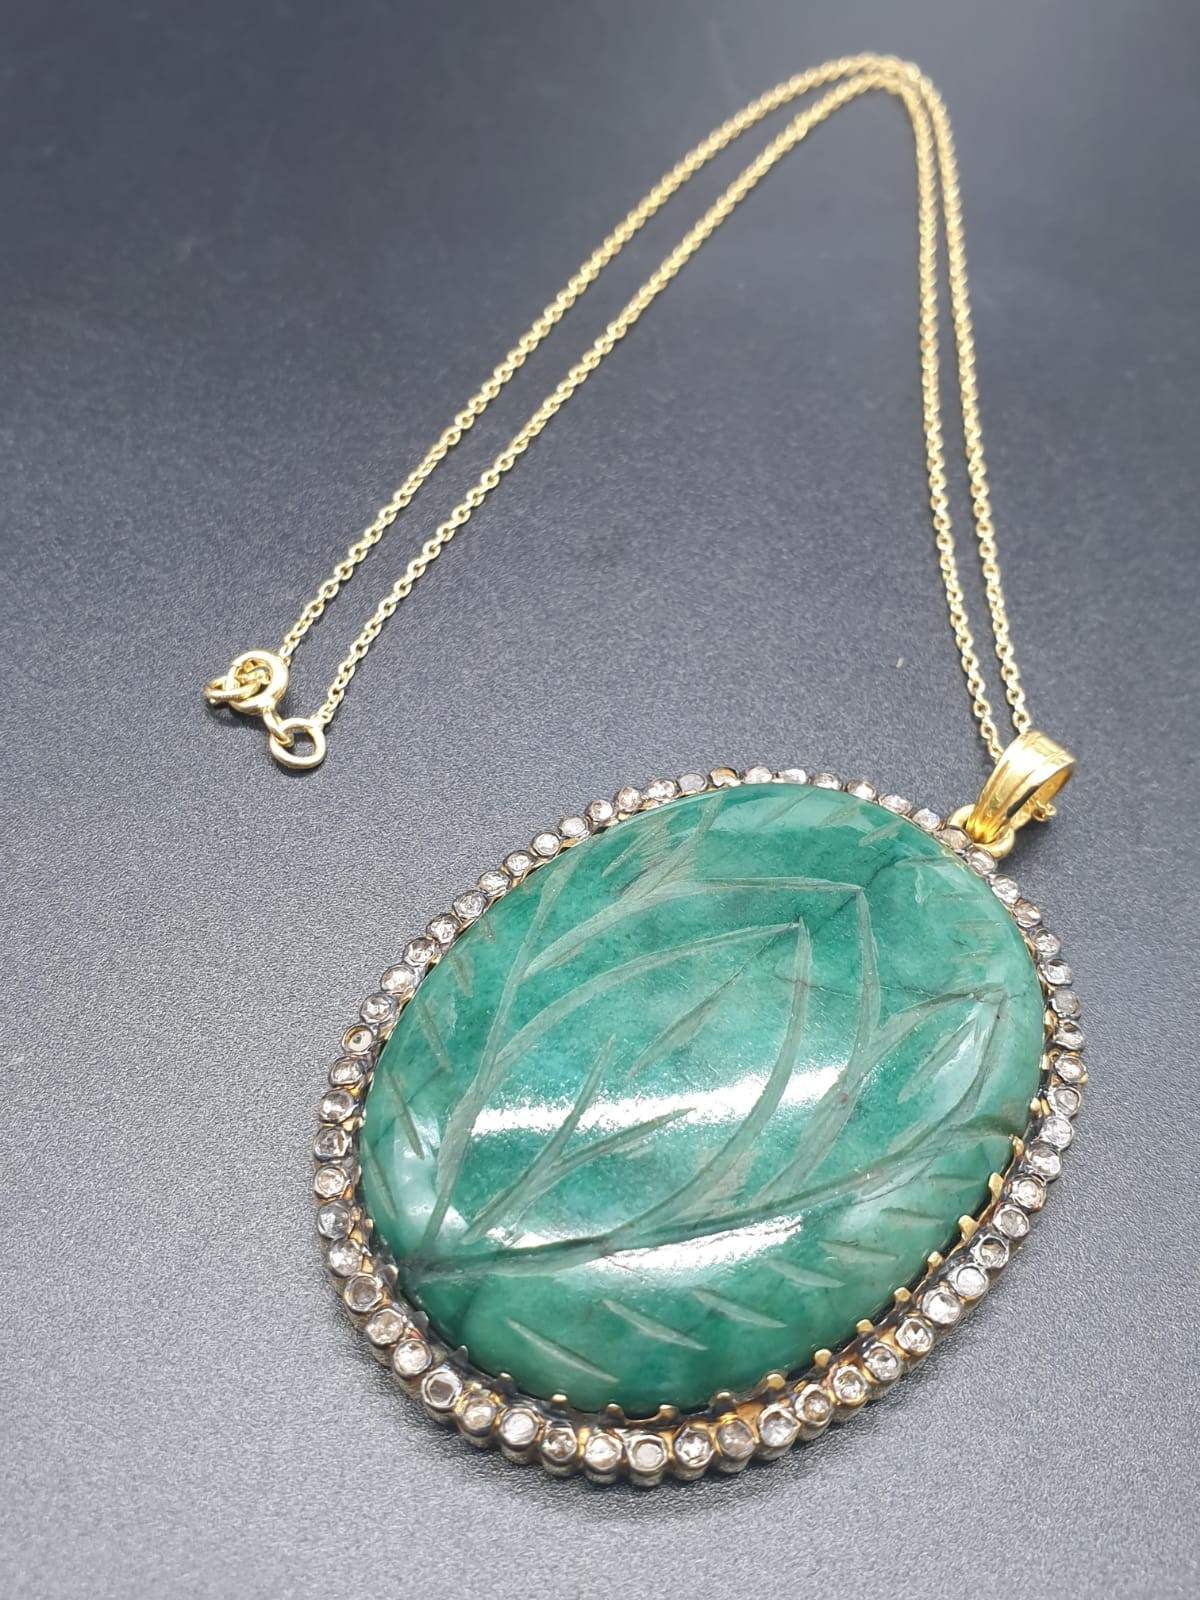 A carved emerald Pendant with a halo of rose cut diamonds in pave setting in sterling silver with - Image 2 of 7